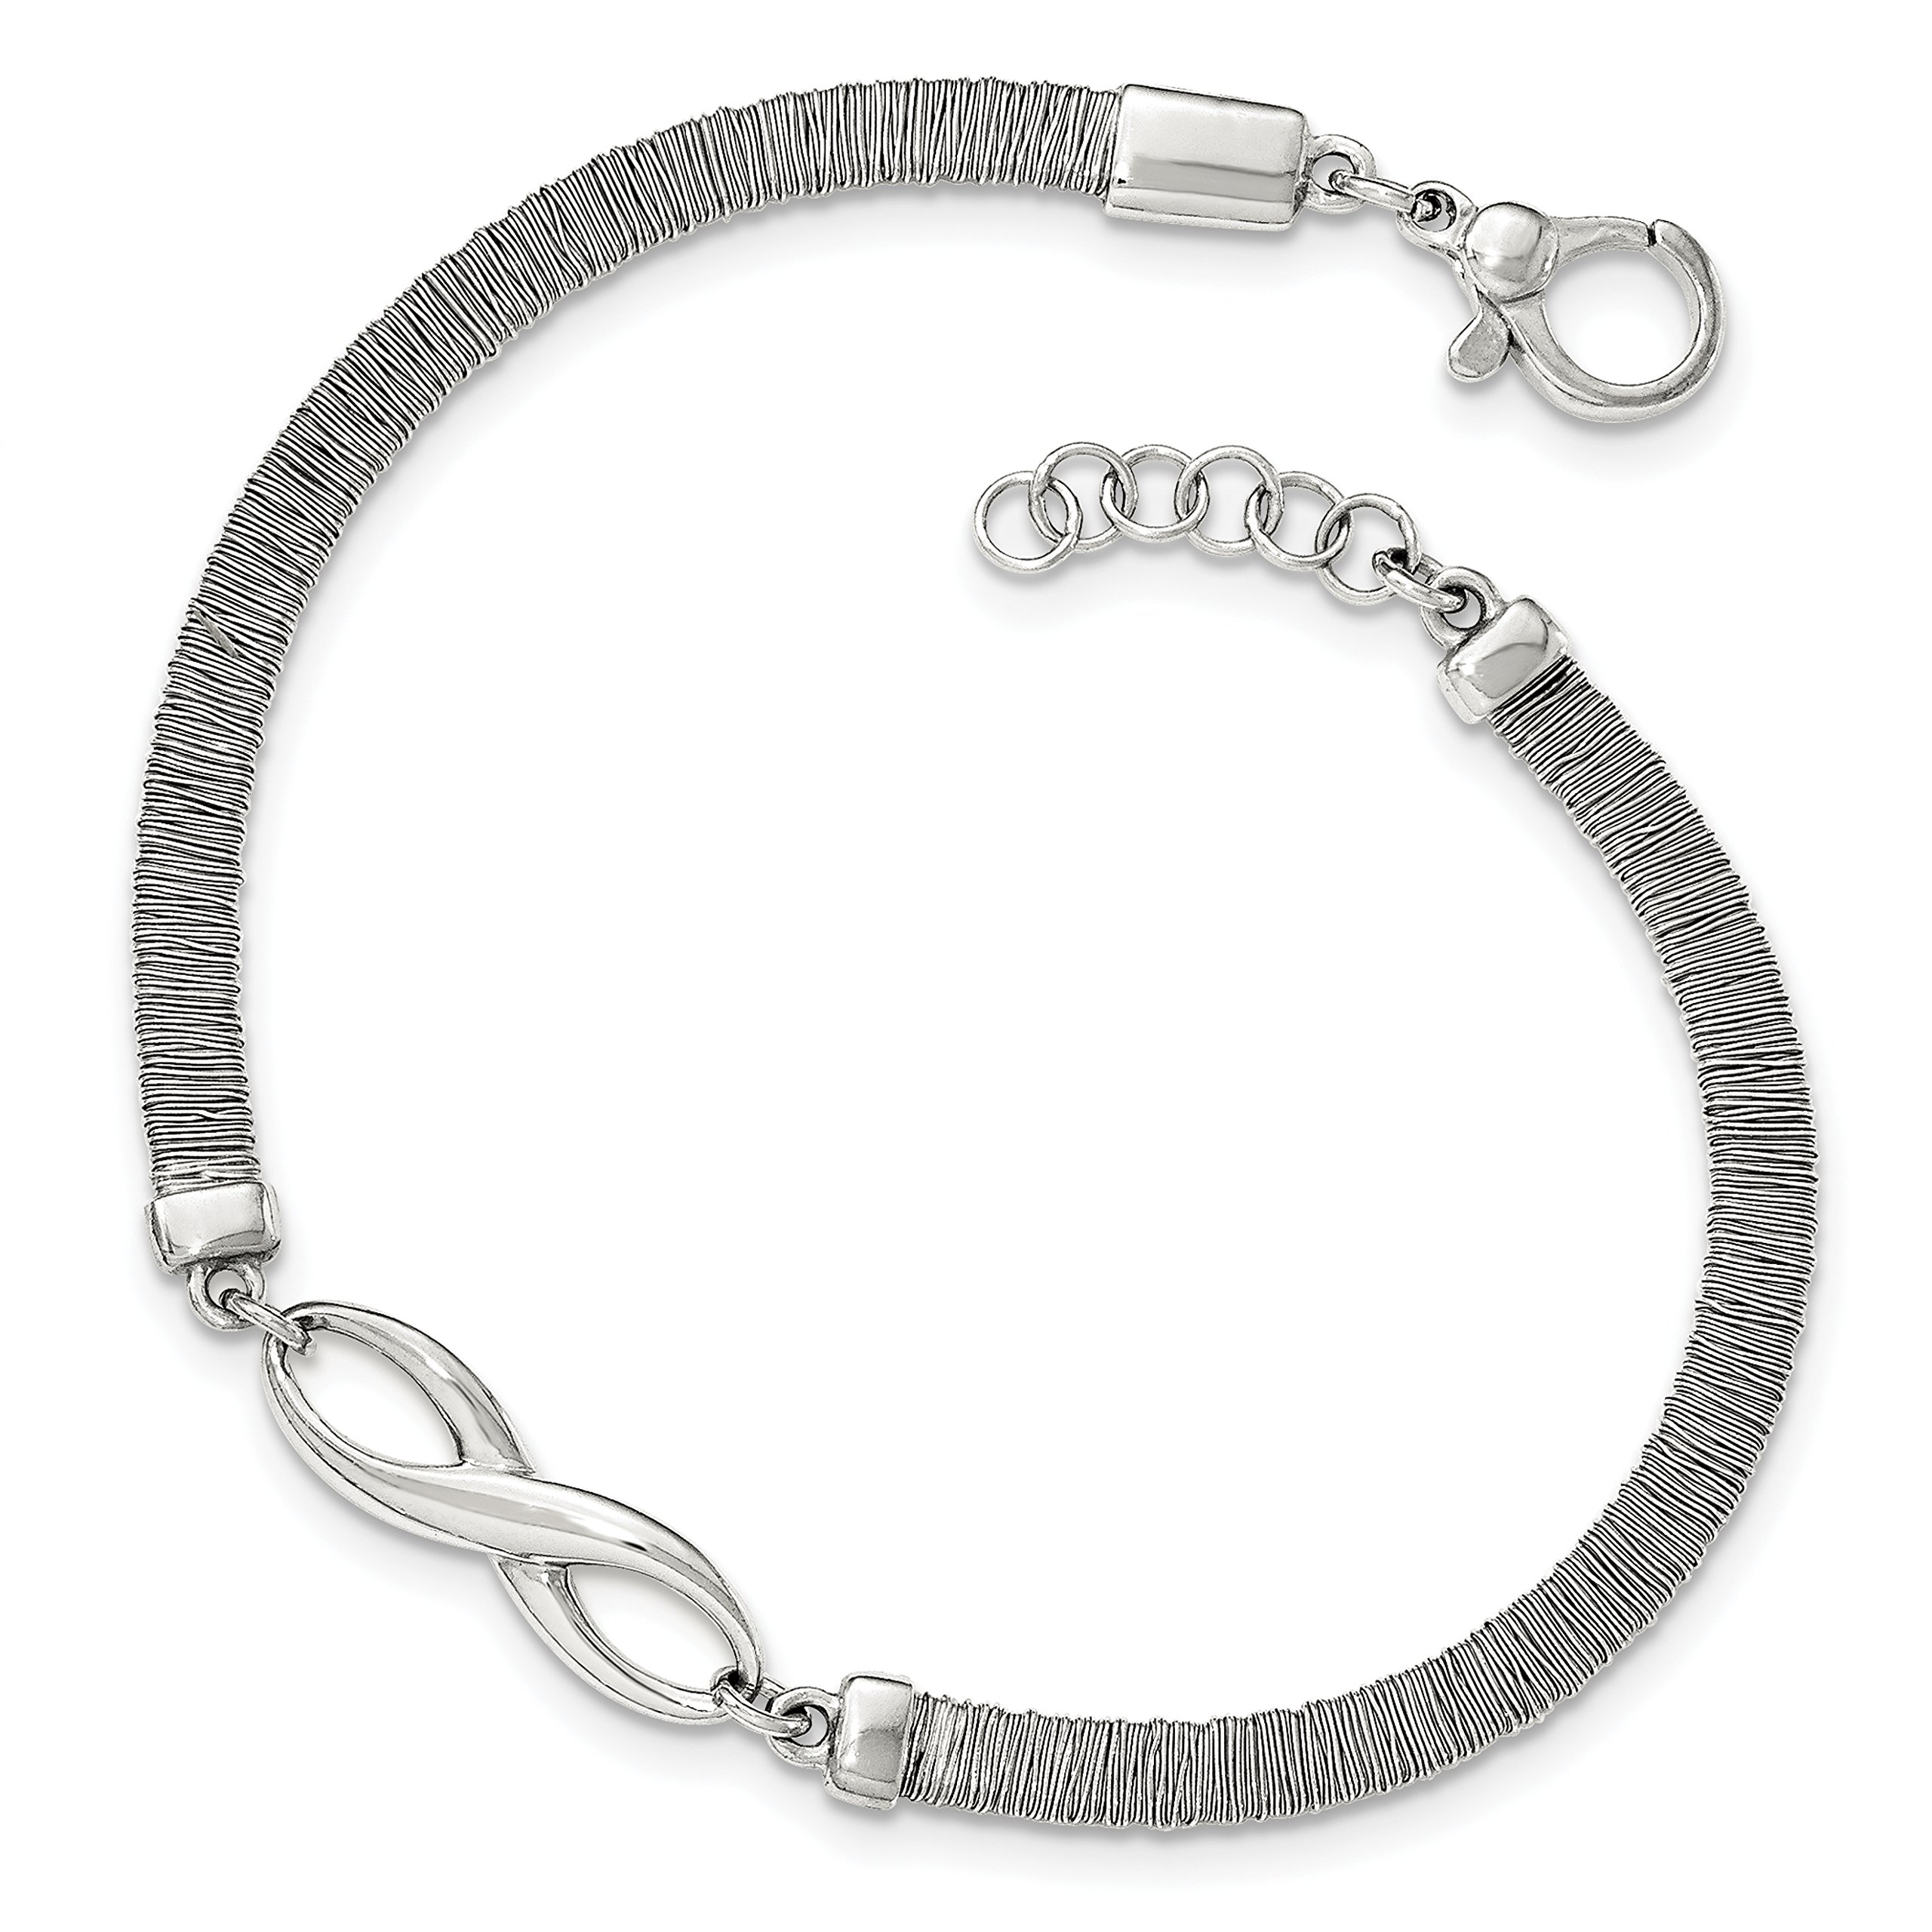 ICE CARATS 925 Sterling Silver Textured Infinity Bracelet .75in Extender 7.50 Inch Fine Jewelry Gift Set For Women Heart